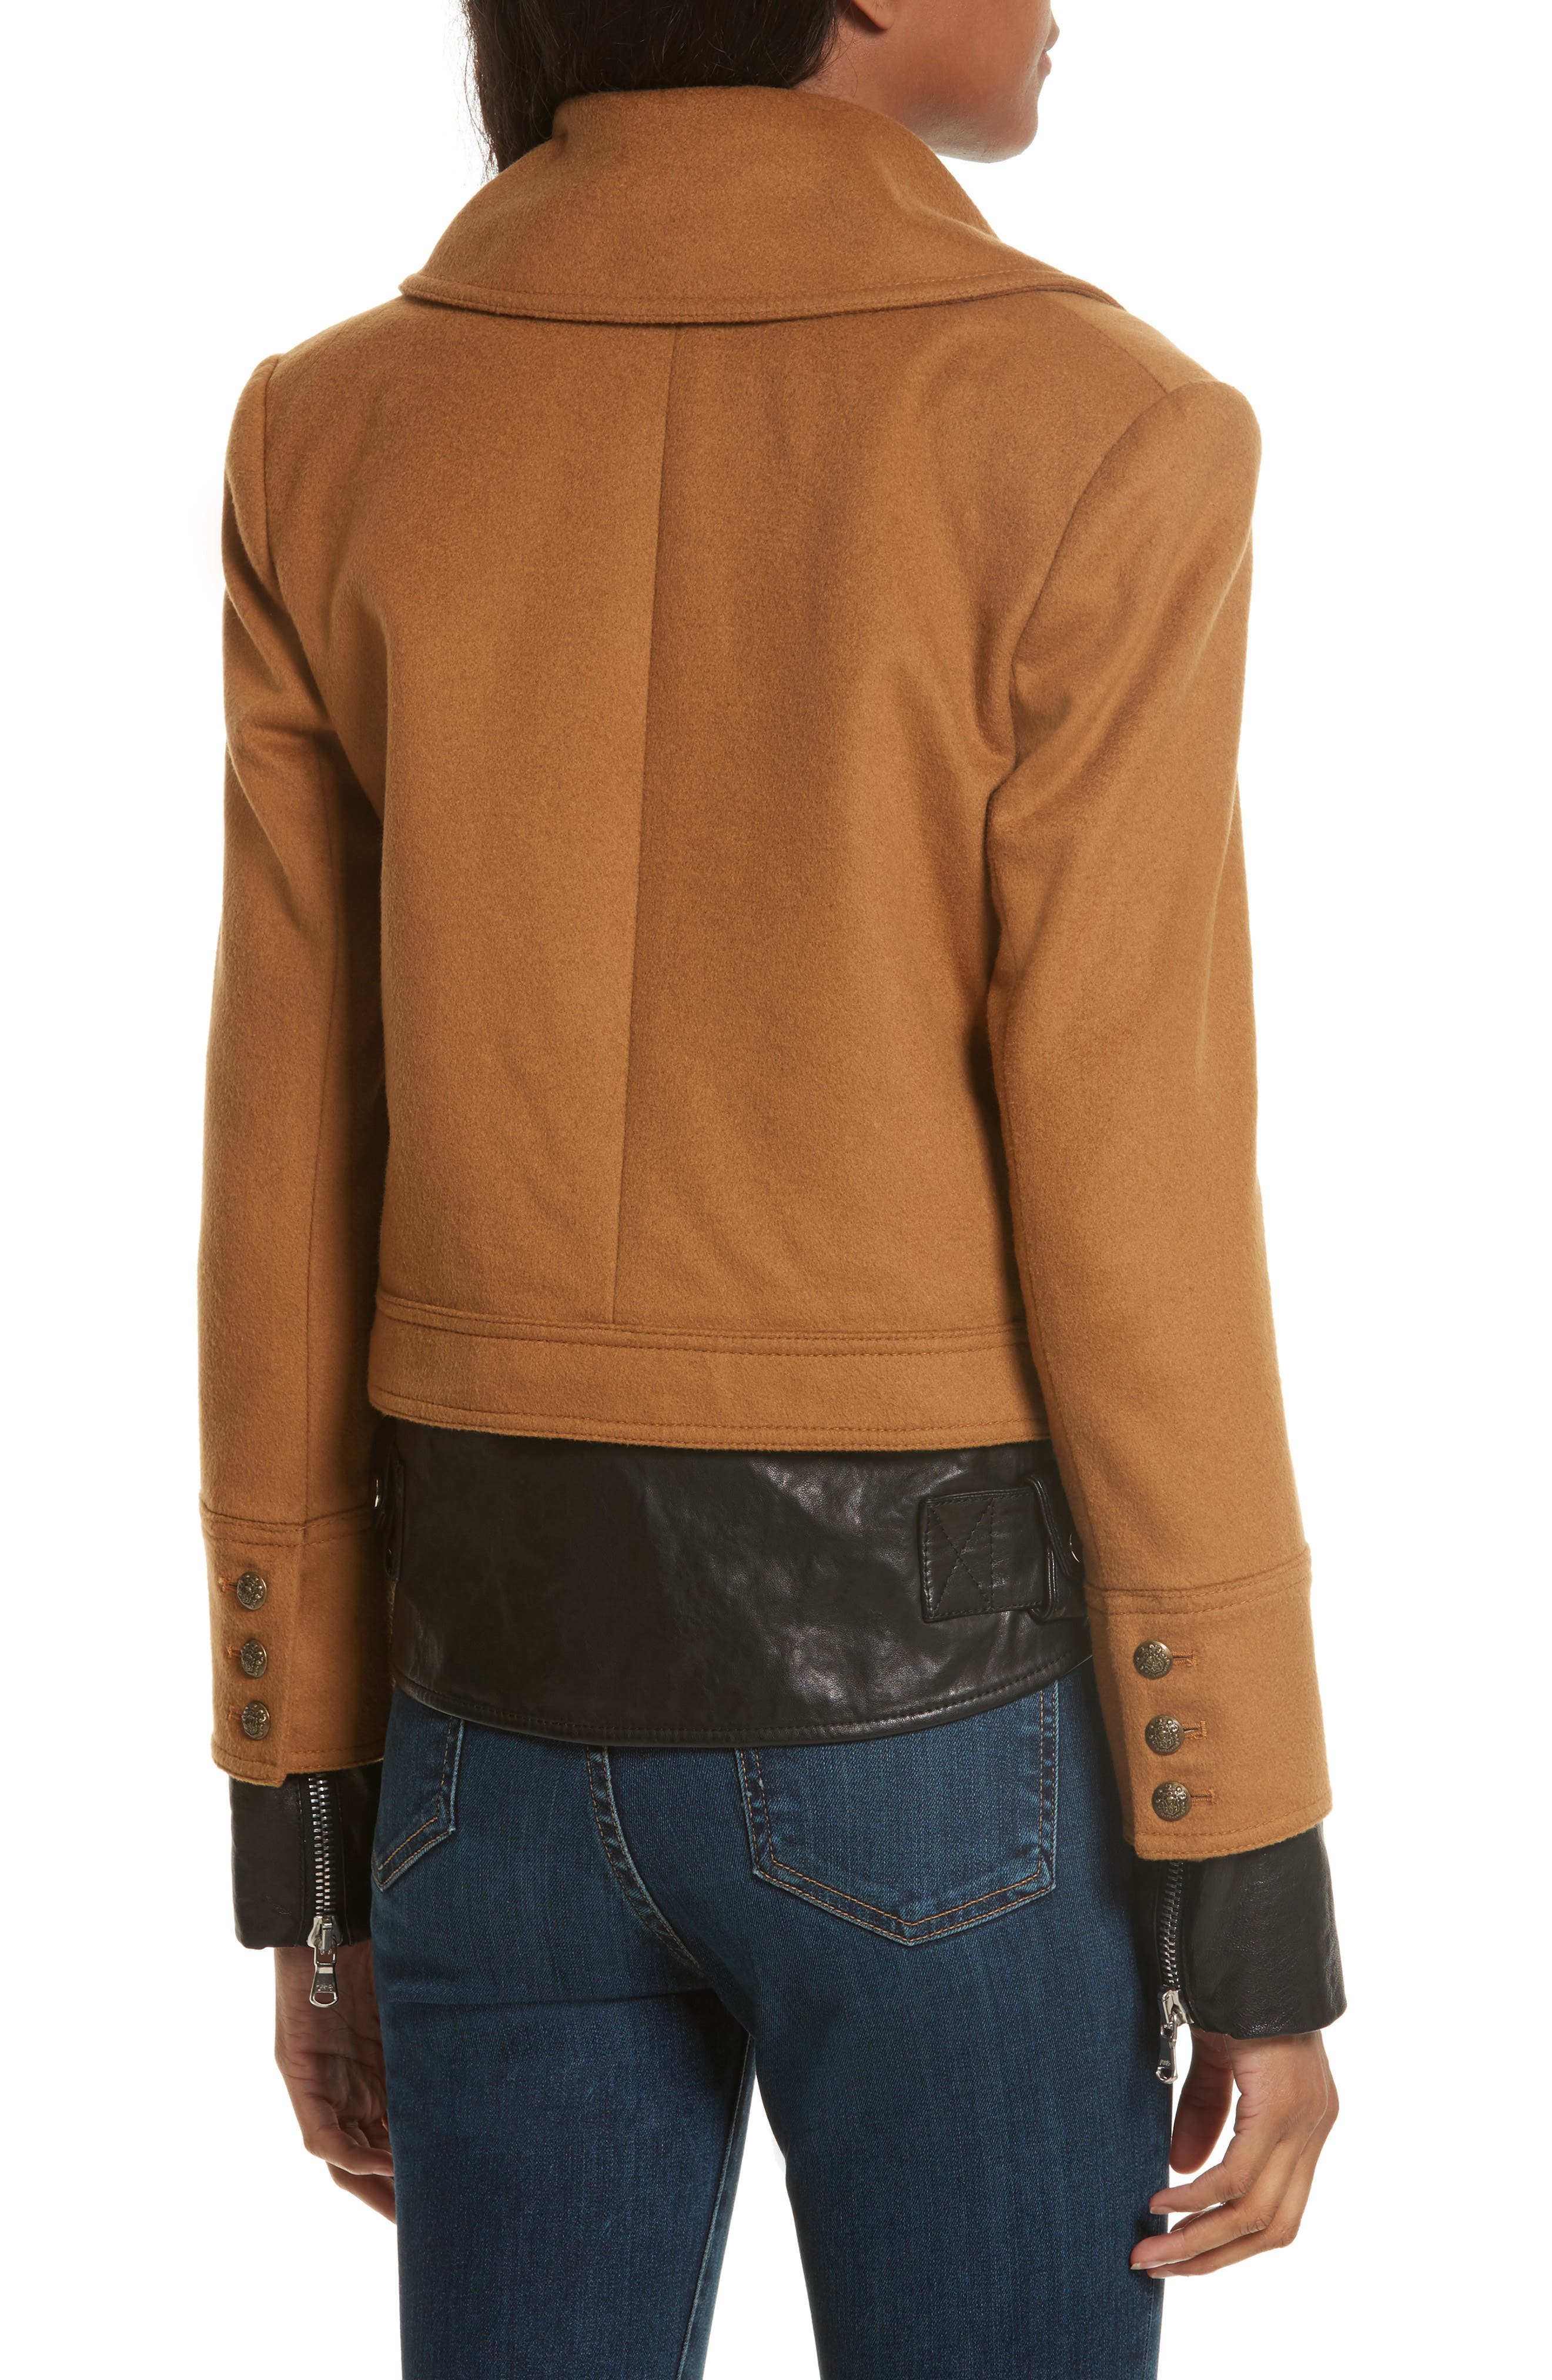 Yara Leather Hem Peacoat,                             Alternate thumbnail 2, color,                             245